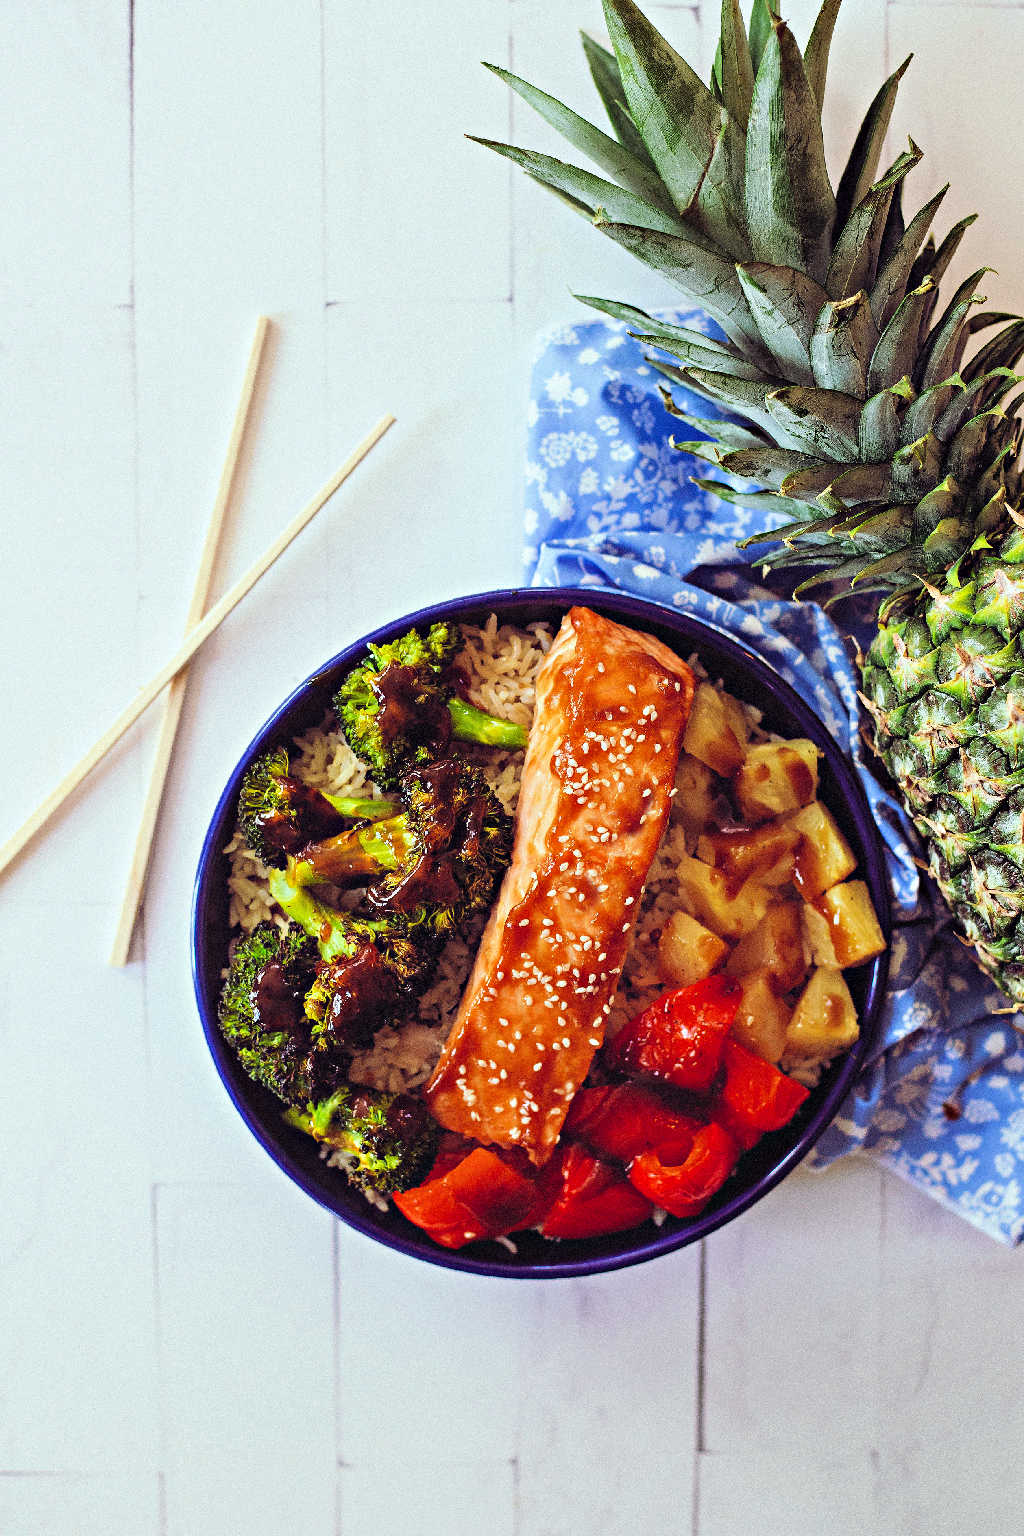 teriyaki salmon in a bowl with brown rice, roasted broccoli, red bell pepper, and pineapple on a wooden table with a whole pineapple and chopsticks